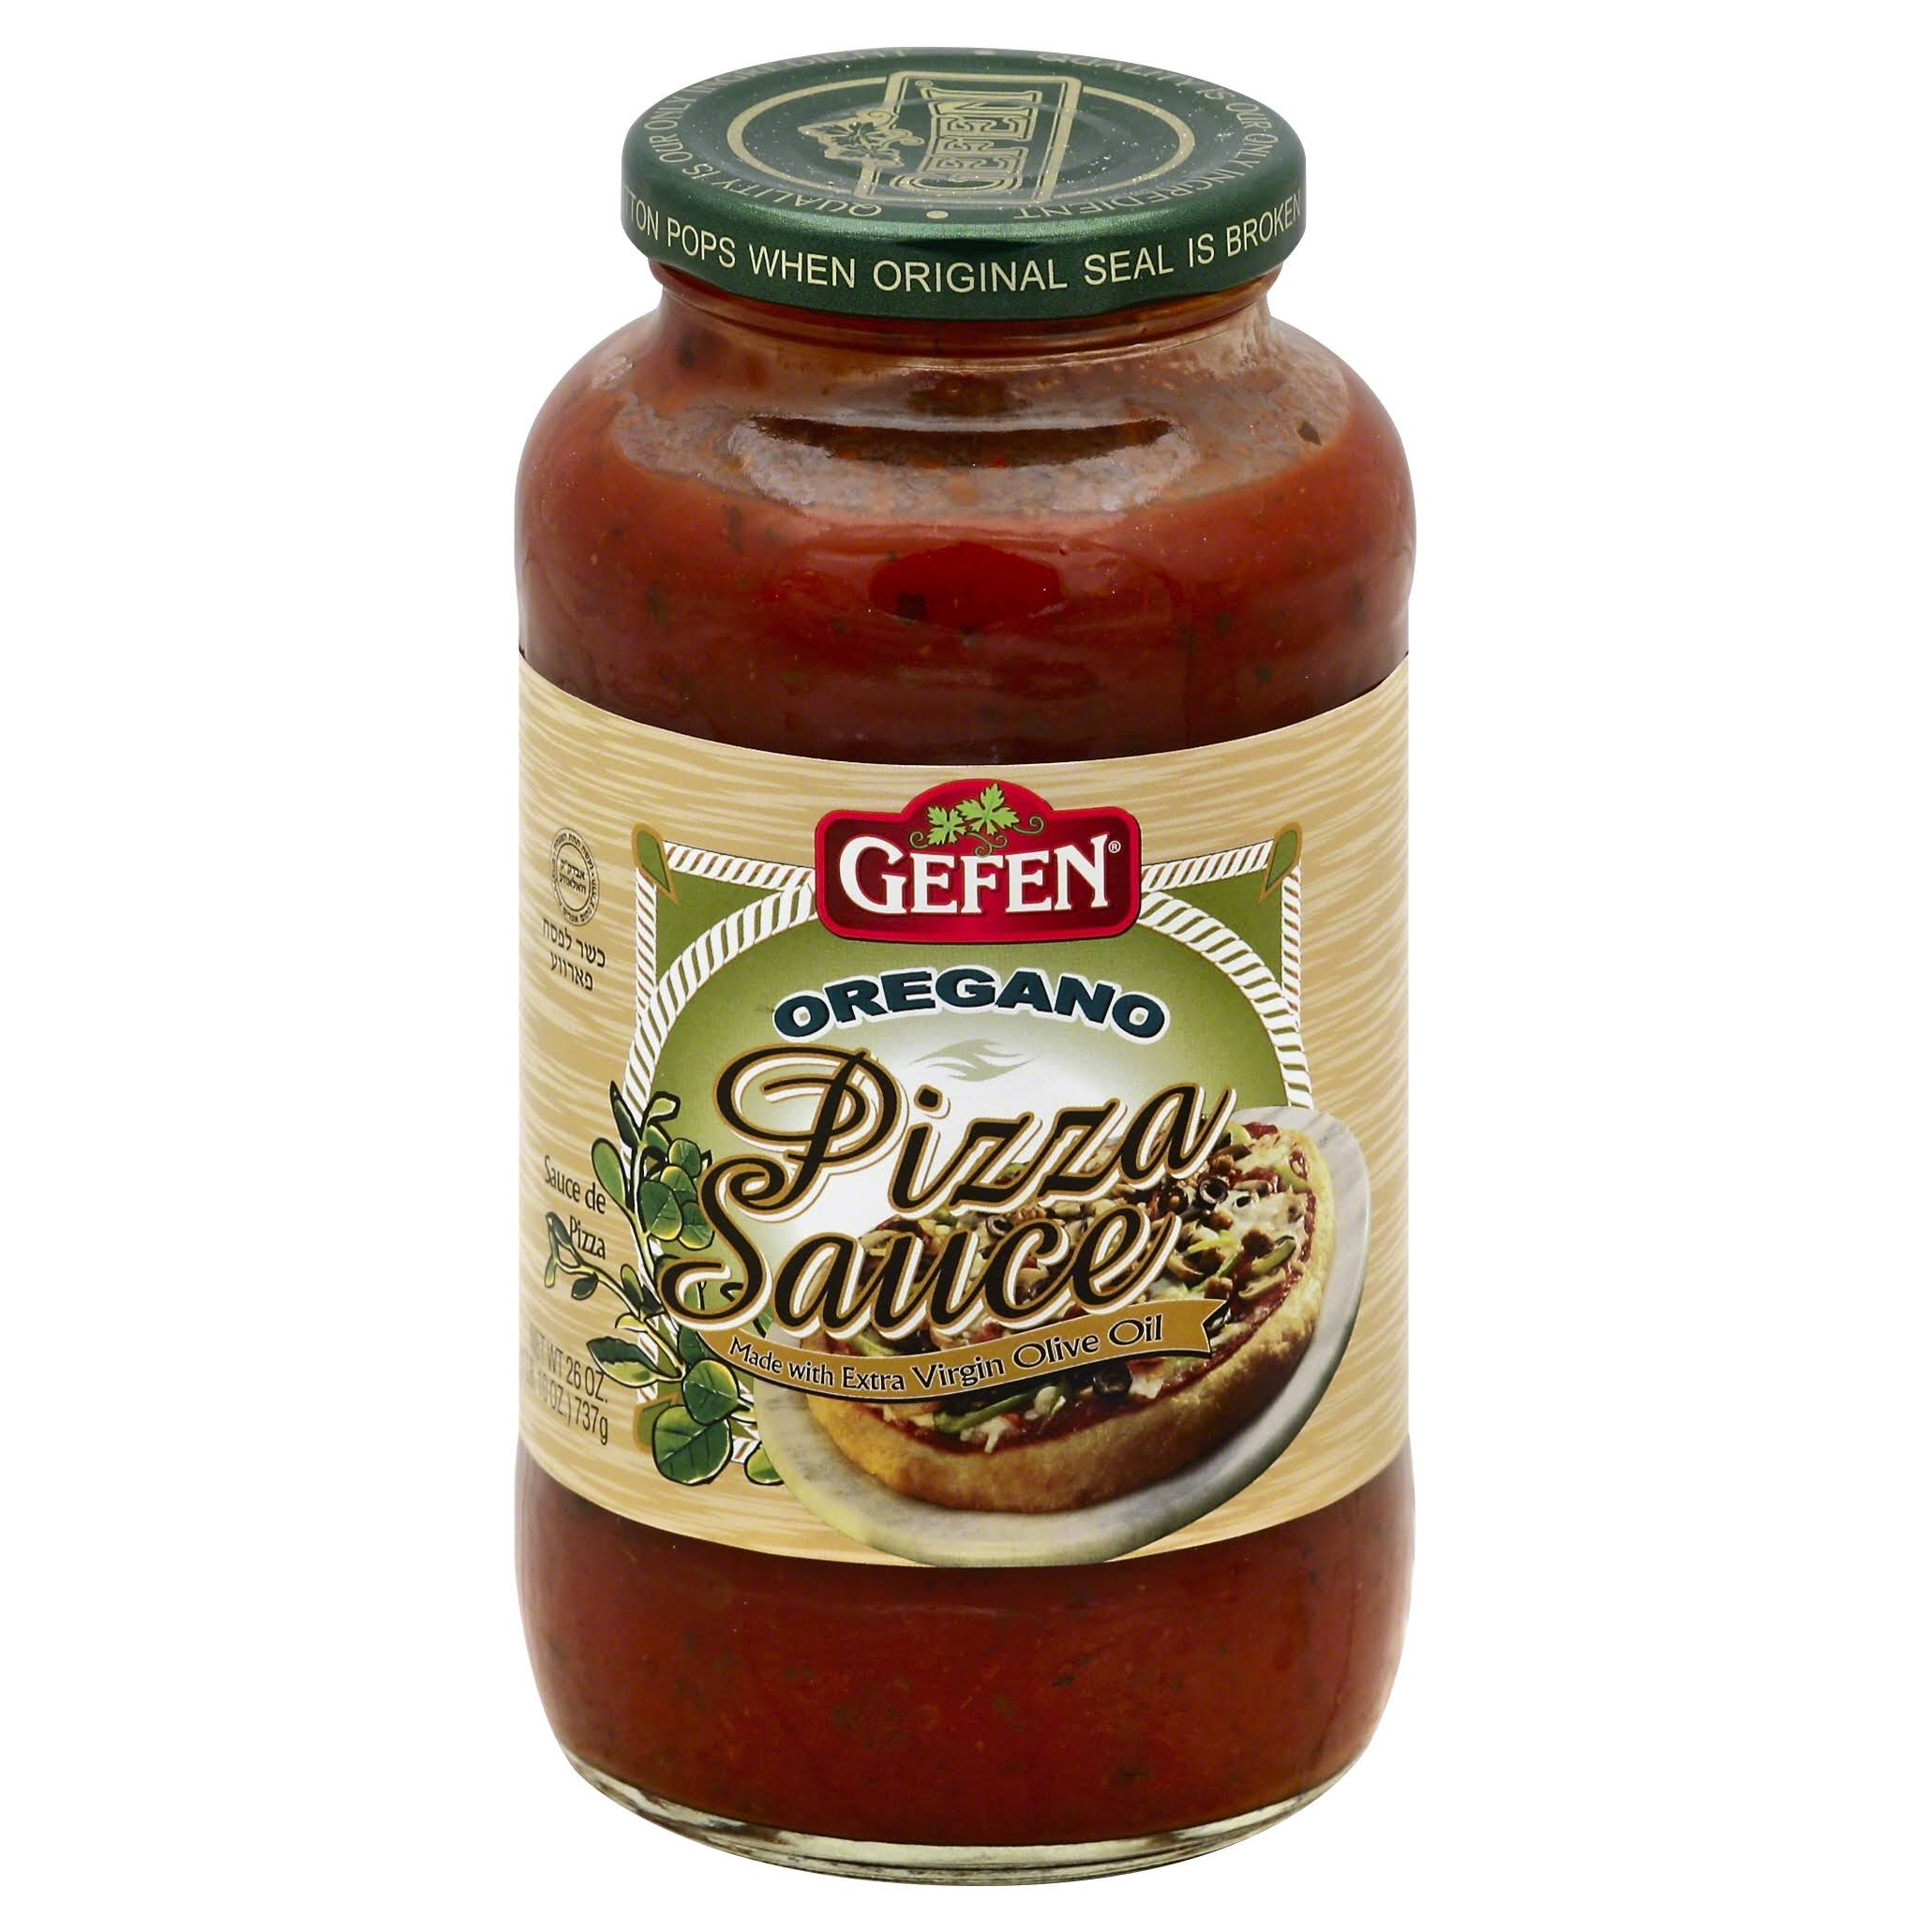 Gefen Pizza Sauce, Oregano - 26 oz